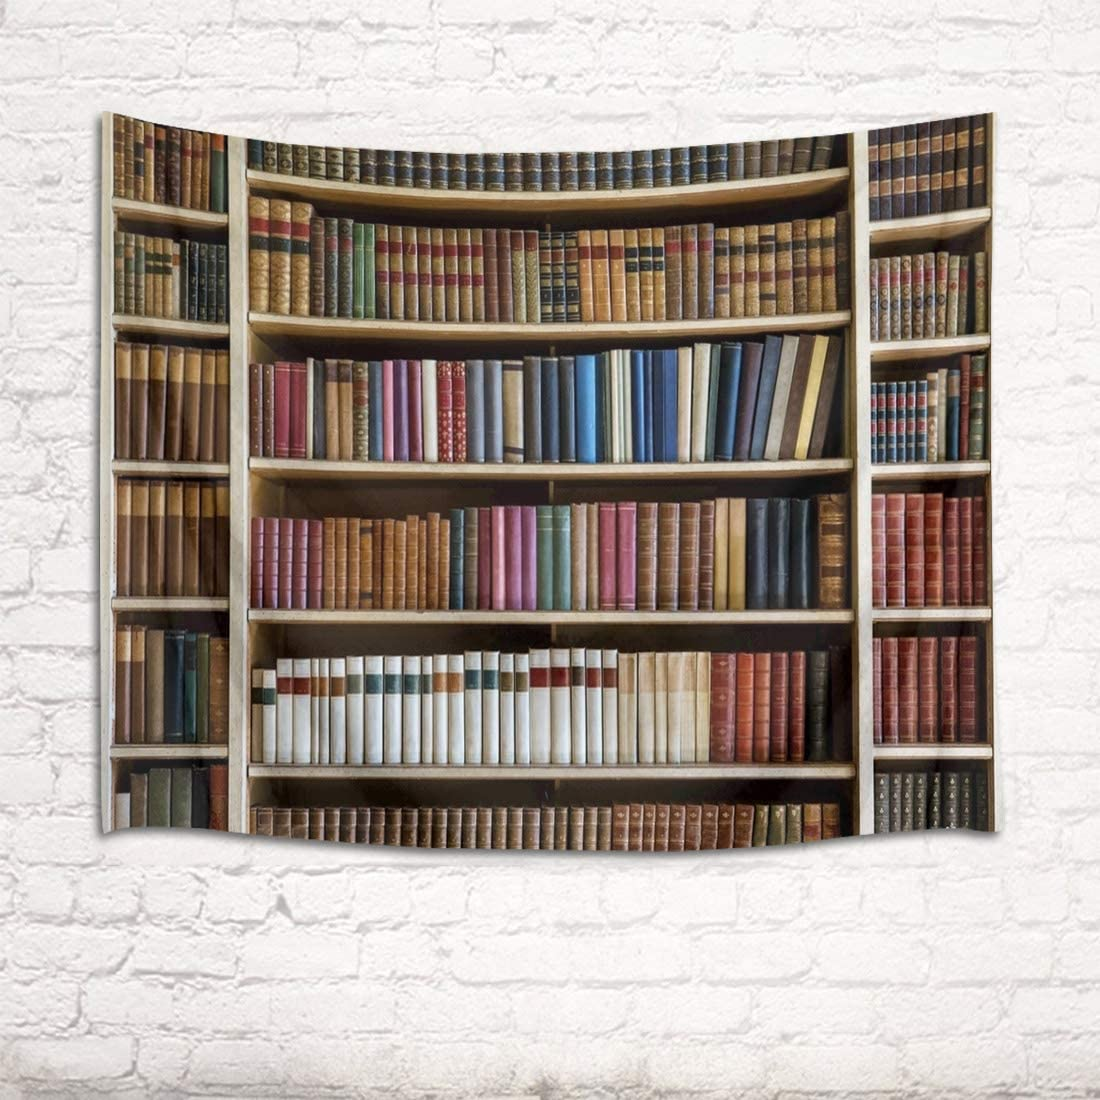 HVEST Library Tapestry Books on Wooden Shelf Wall Hanging Modern Bookshelf Tapestries for Bedroom Living Room Dorm Wall Decor,92.5Wx70.9H inches